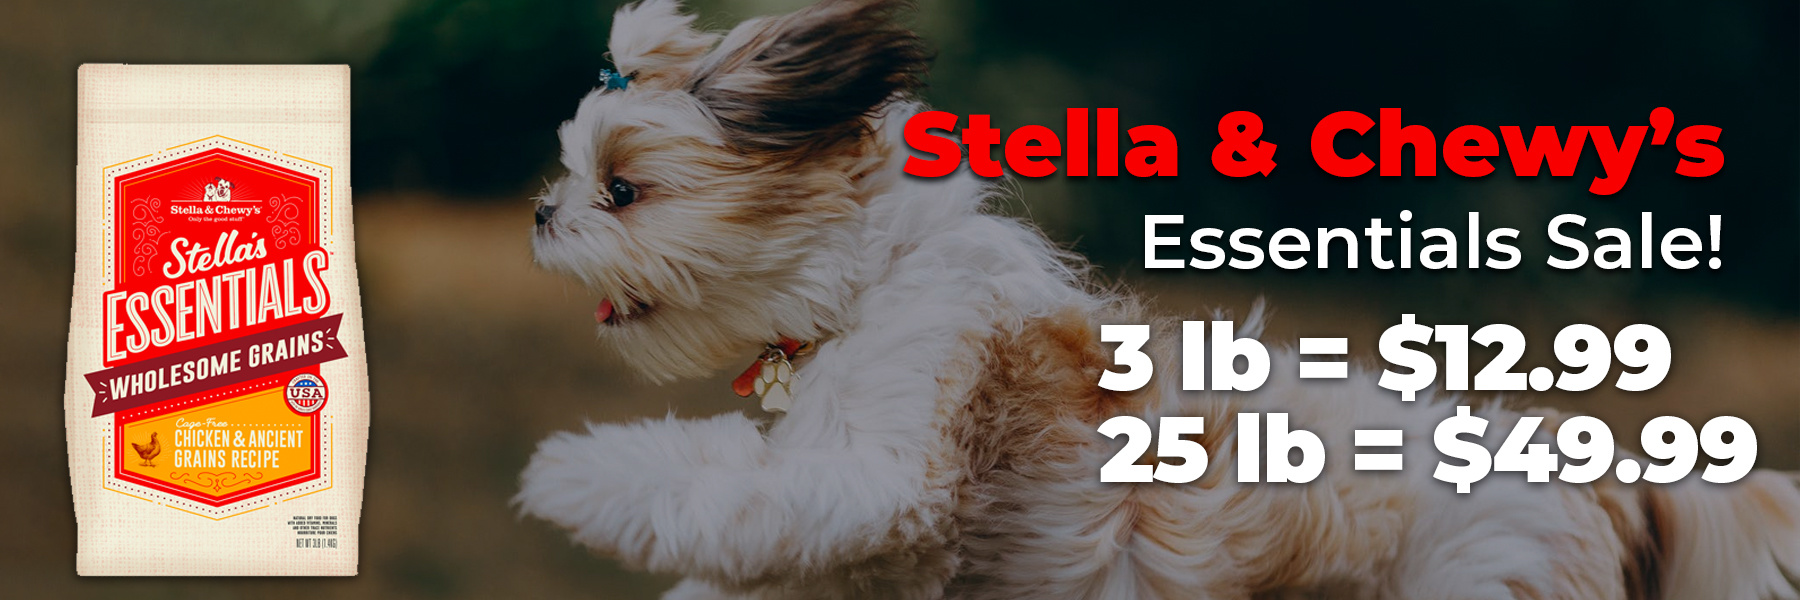 Stella and Chewy's Essentials sale. Sale price is $12.99 for 3 lb bag and $49.99 for 25 lb bag